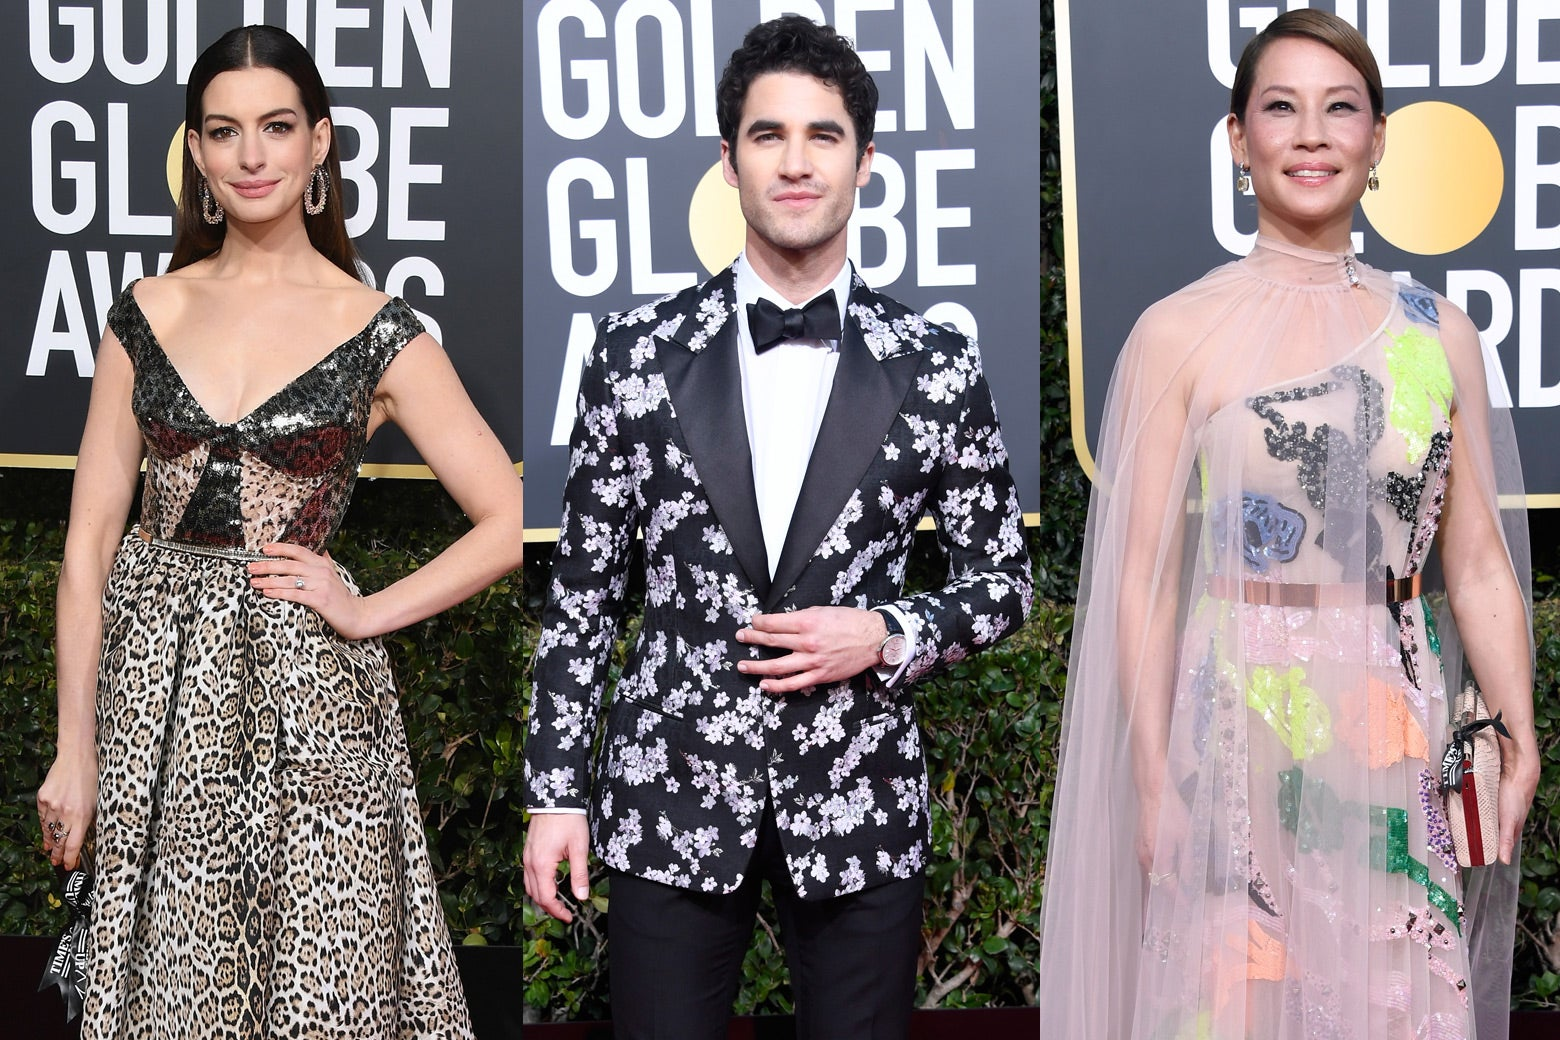 Anne Hathaway, Darren Criss, and Lucy Liu at the 2019 Golden Globes.